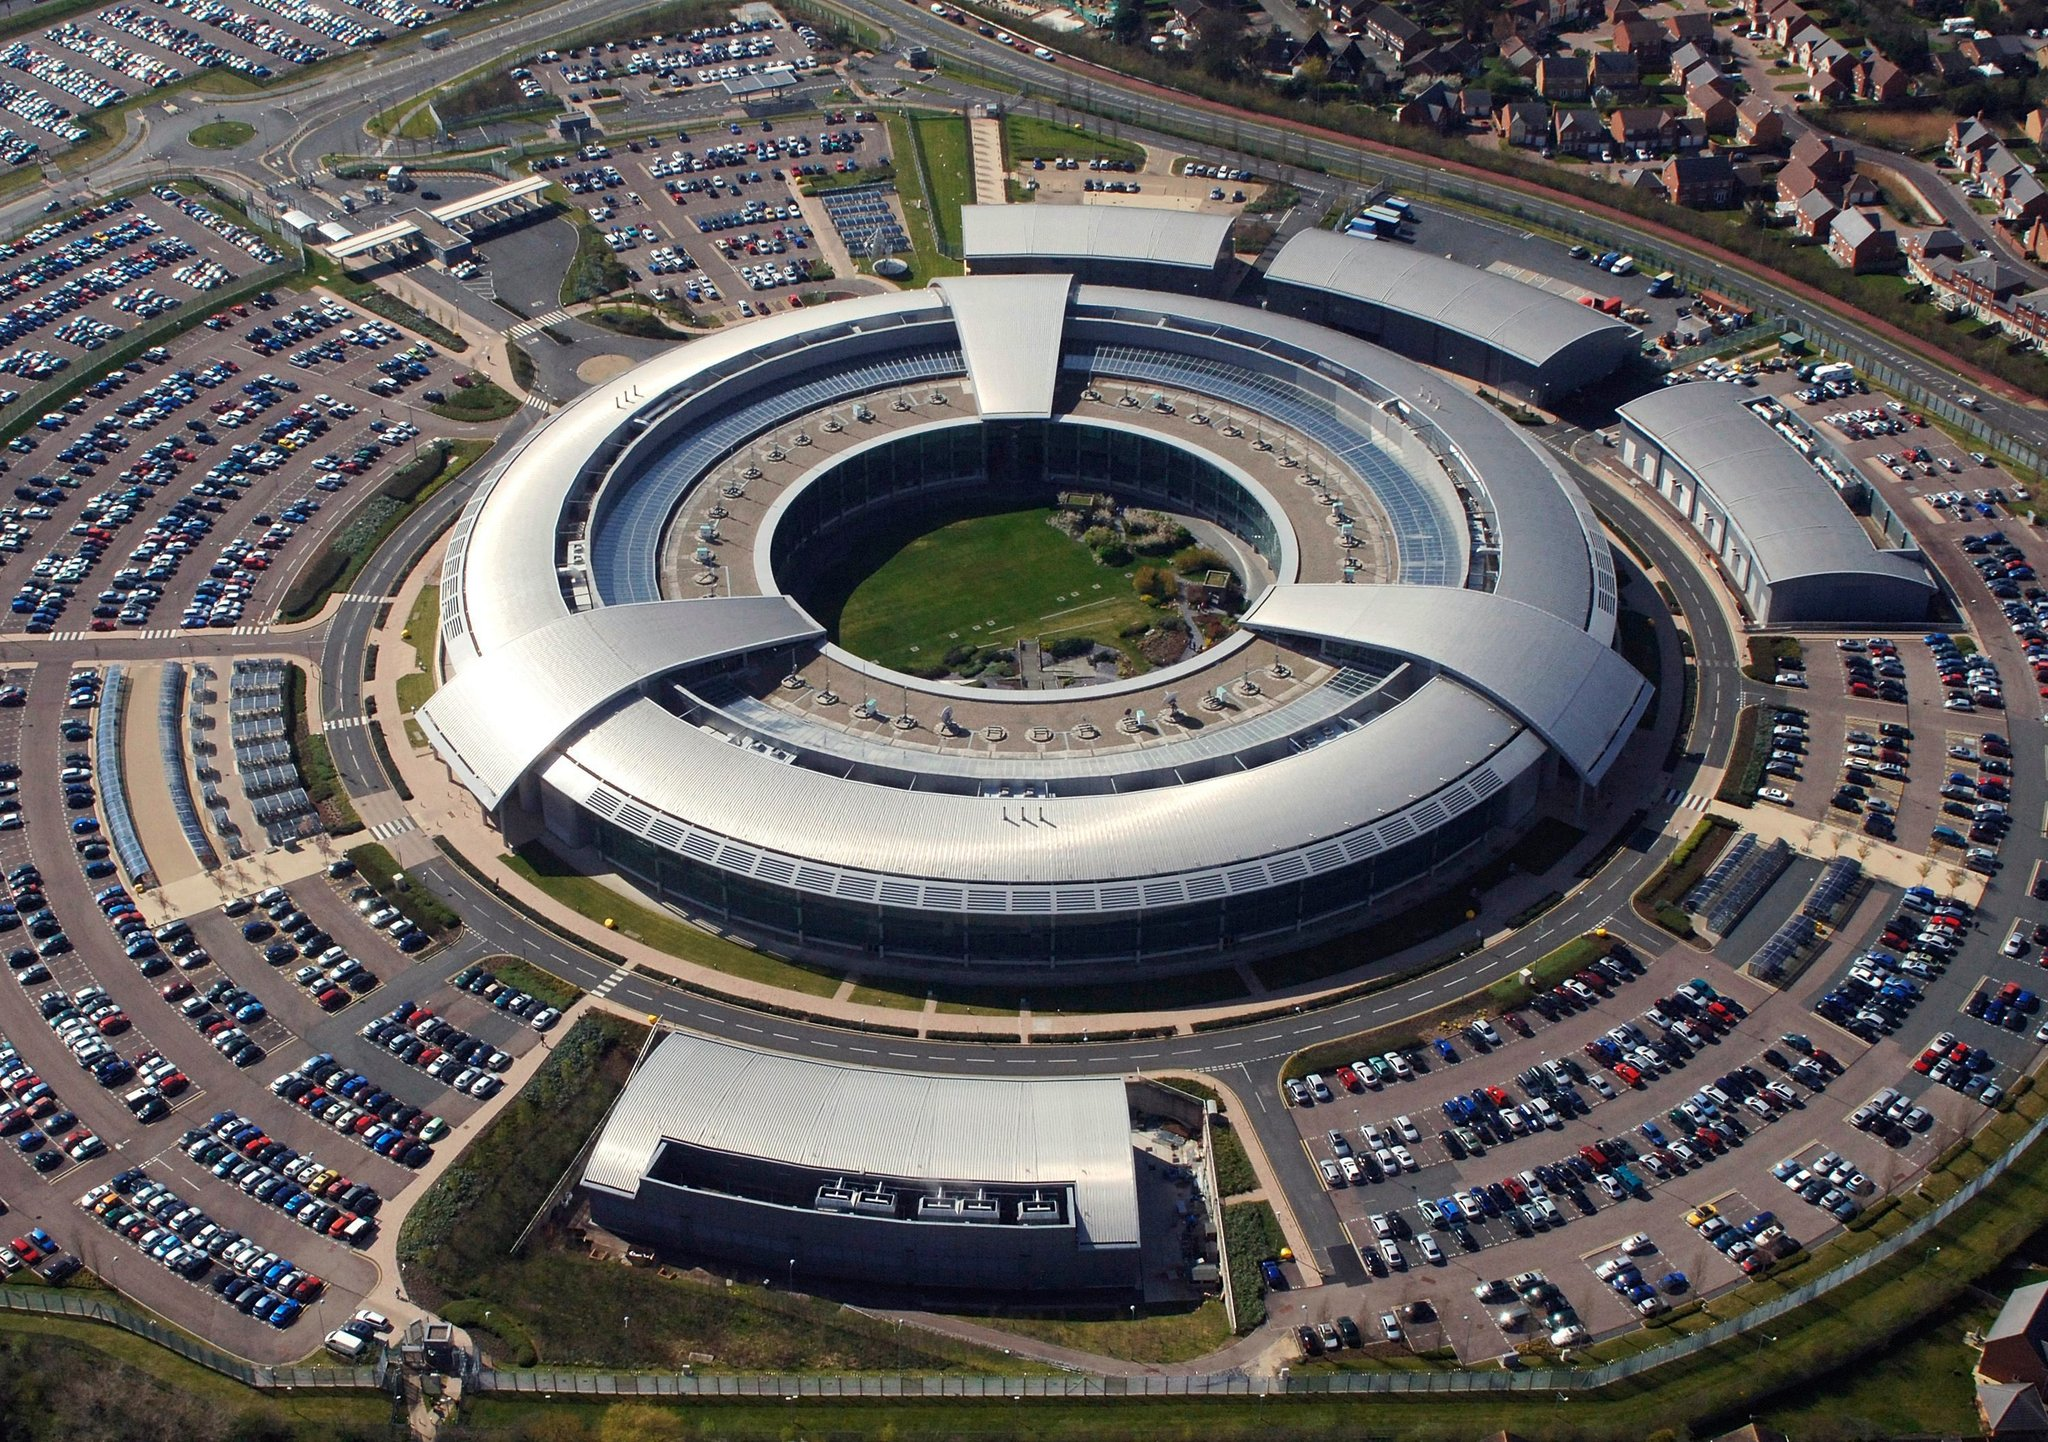 The Government Communications Headquarters in Britain. Image: GHCQ/British Ministry of Defence